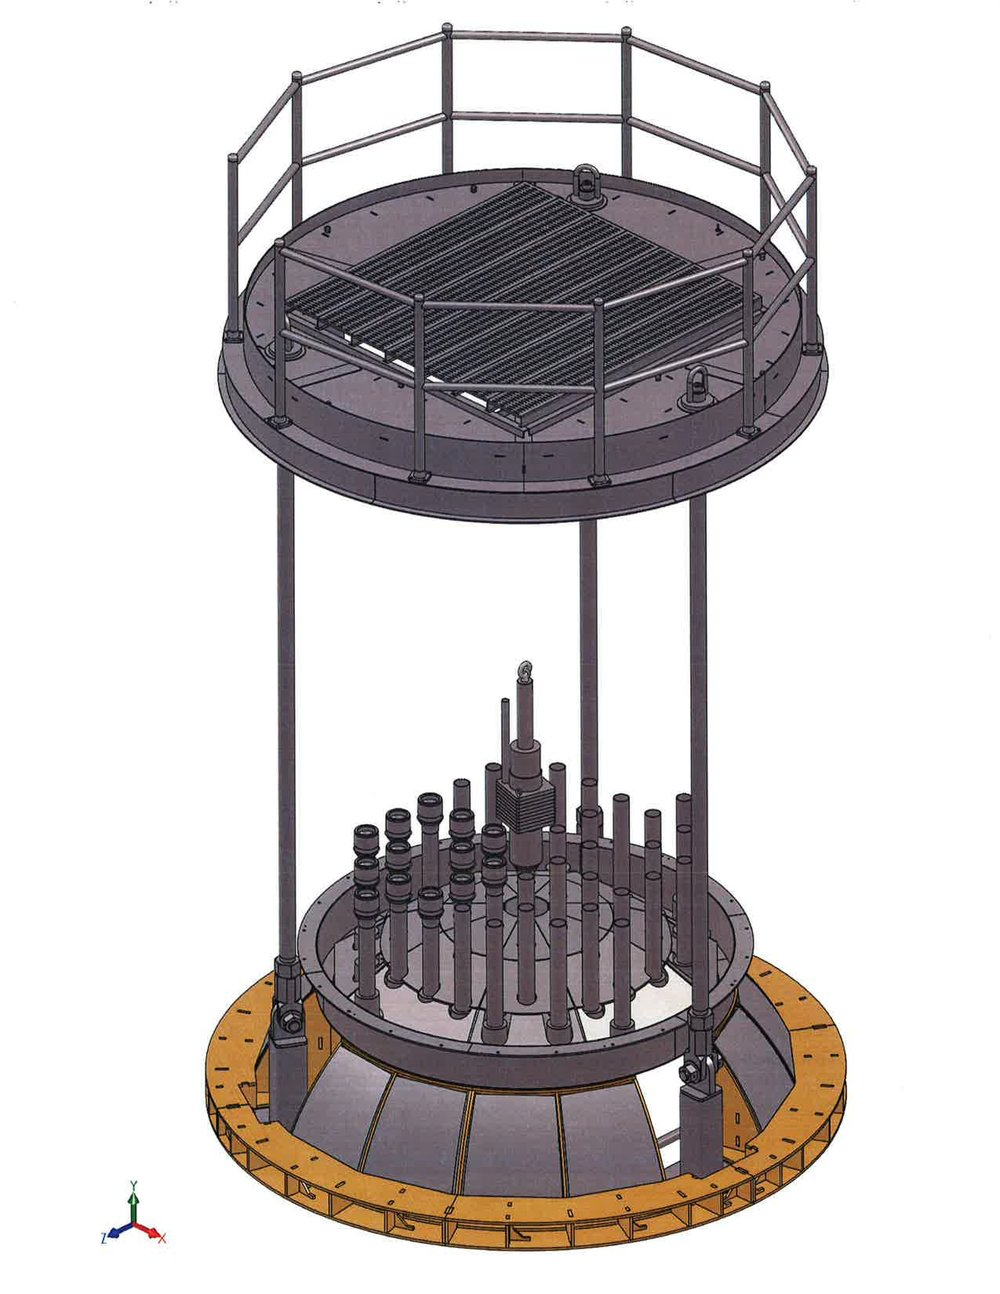 A screen shot of the mock-up reactor head and service platform.